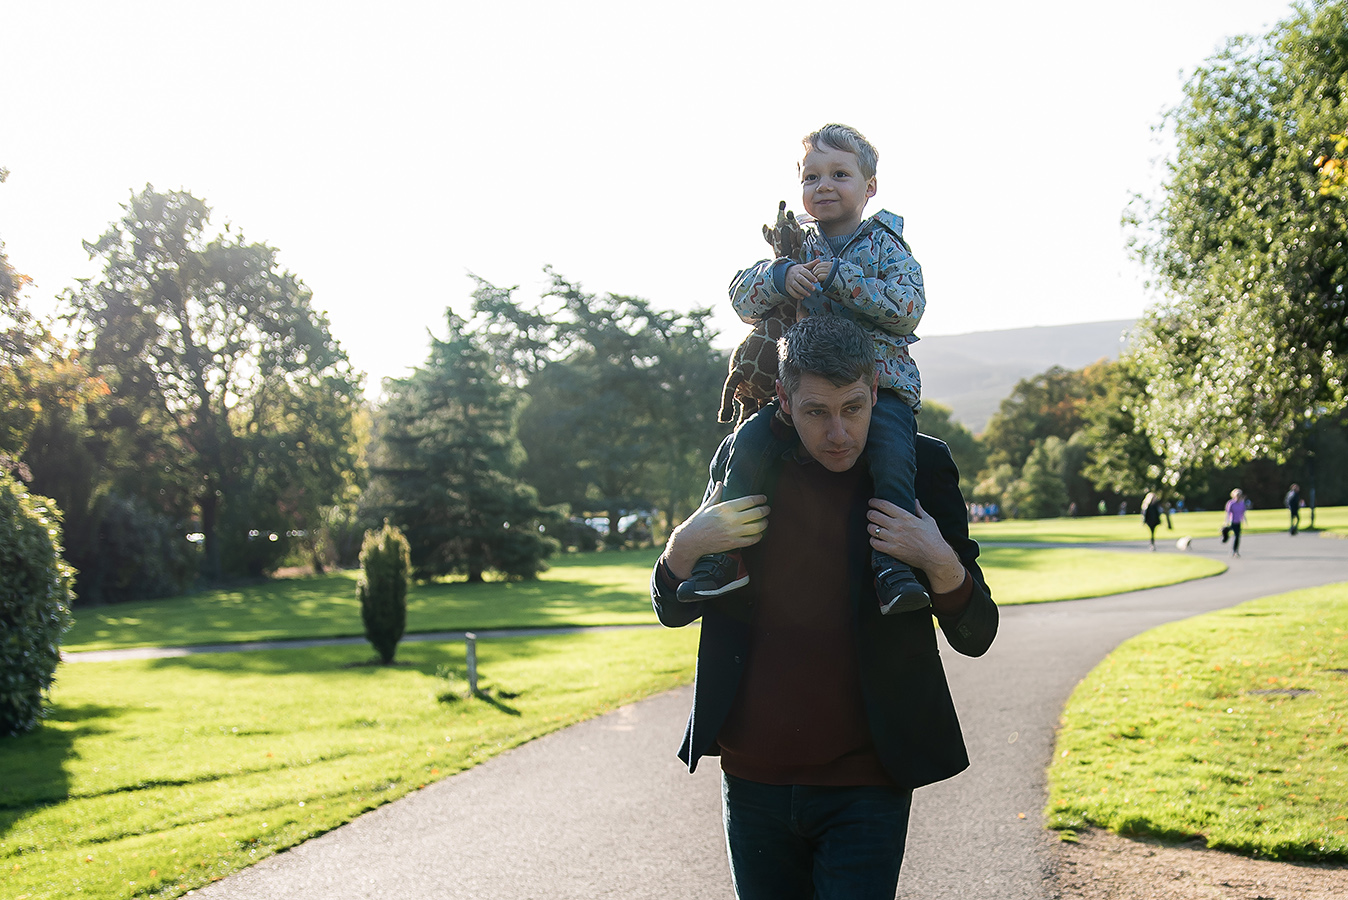 Boy on dad's shoulders - Family Photoshoot at Marlay Park in Dublin by Camila Lee